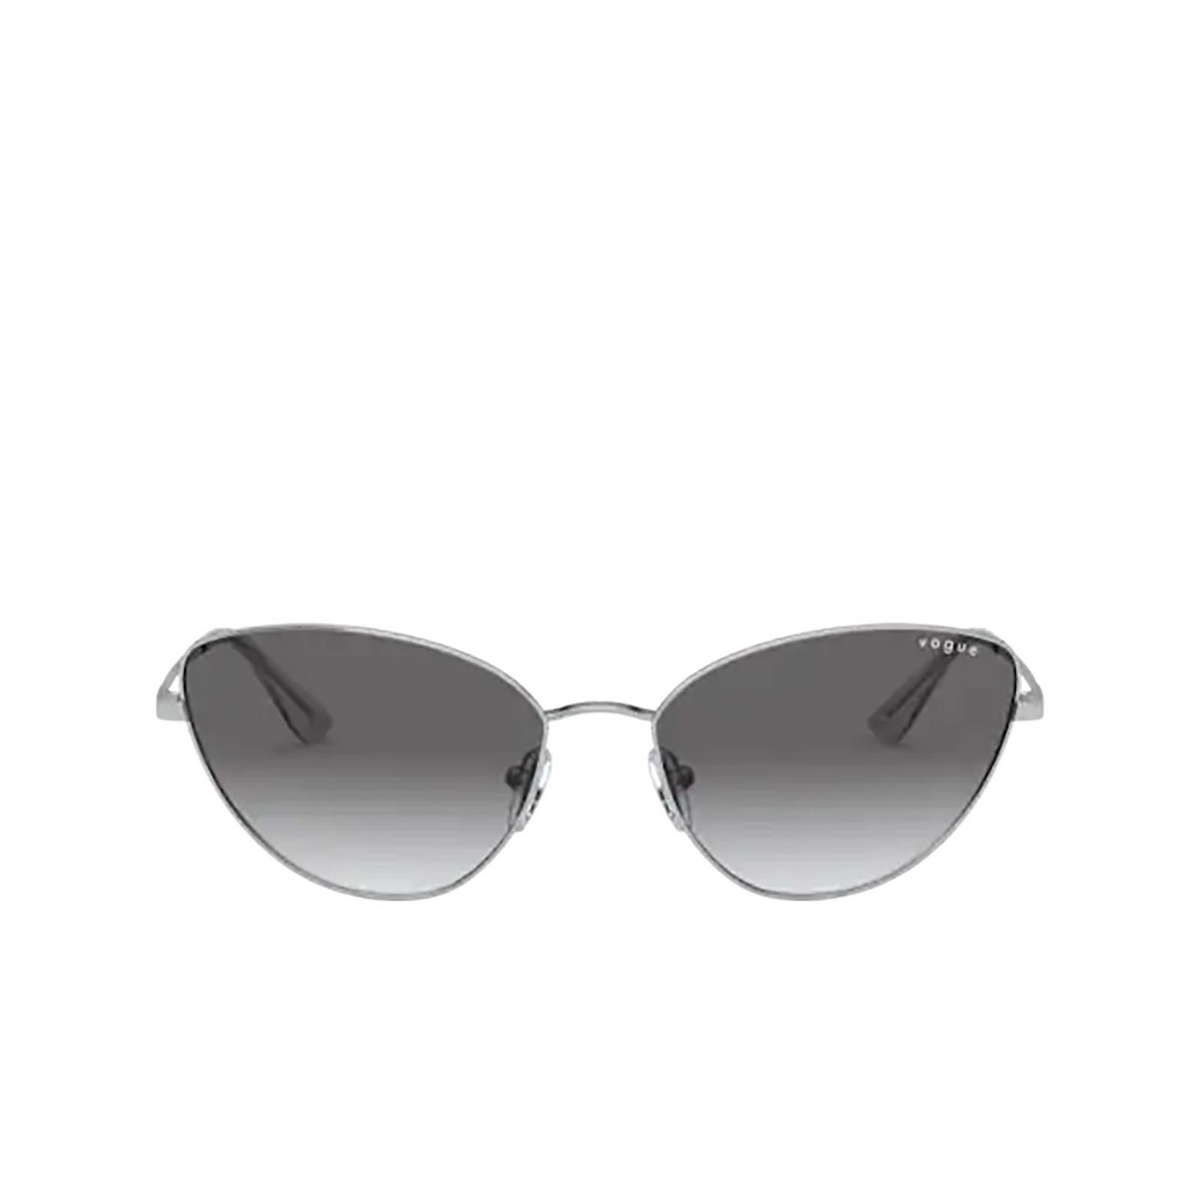 Vogue® Cat-eye Sunglasses: VO4179S color Silver 323/11 - front view.